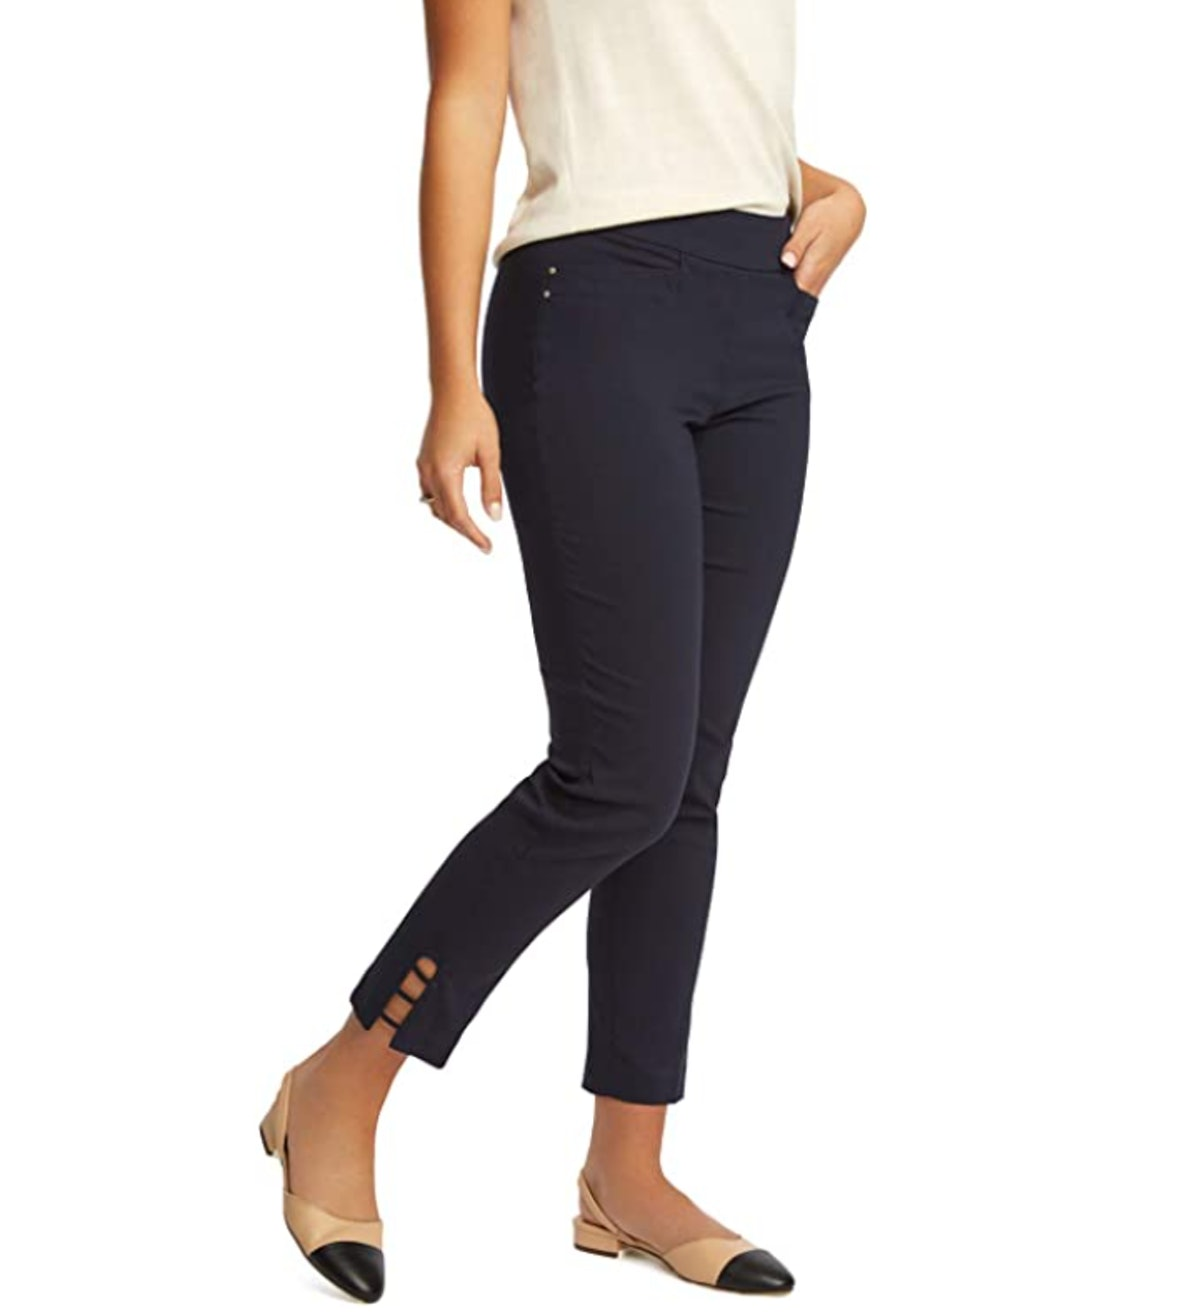 89th + Madison Women's Stretch Ankle Pants